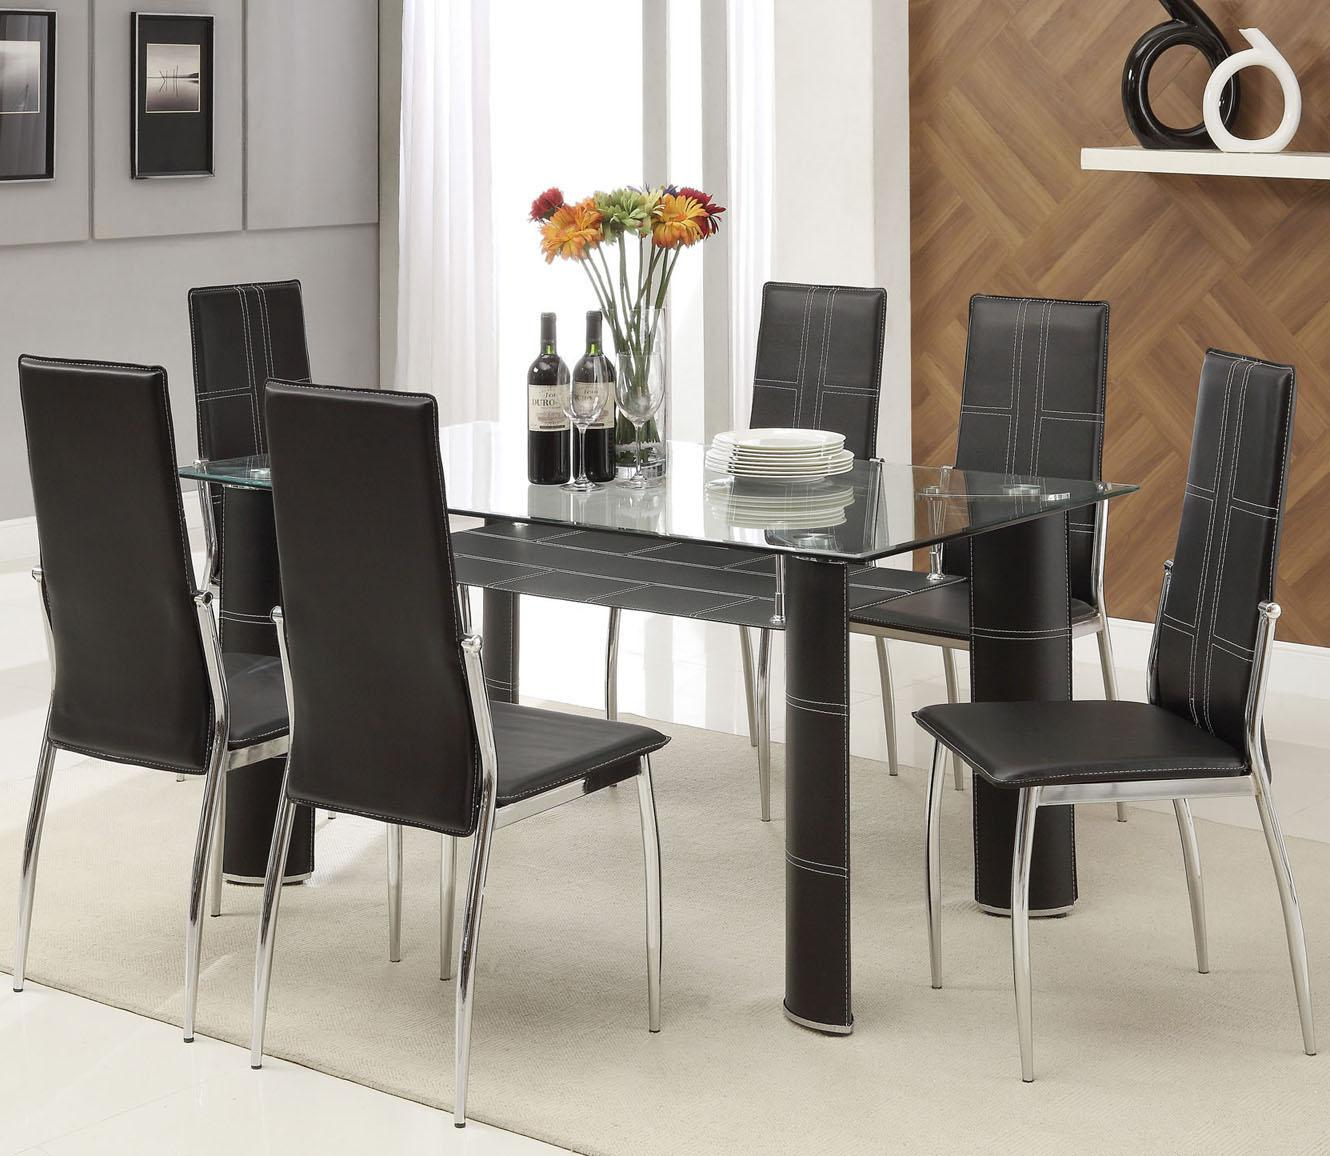 Acme Furniture Riggan Black Leg Table with Black Vinyl Chairs Set - Item Number: 70200+6X70202